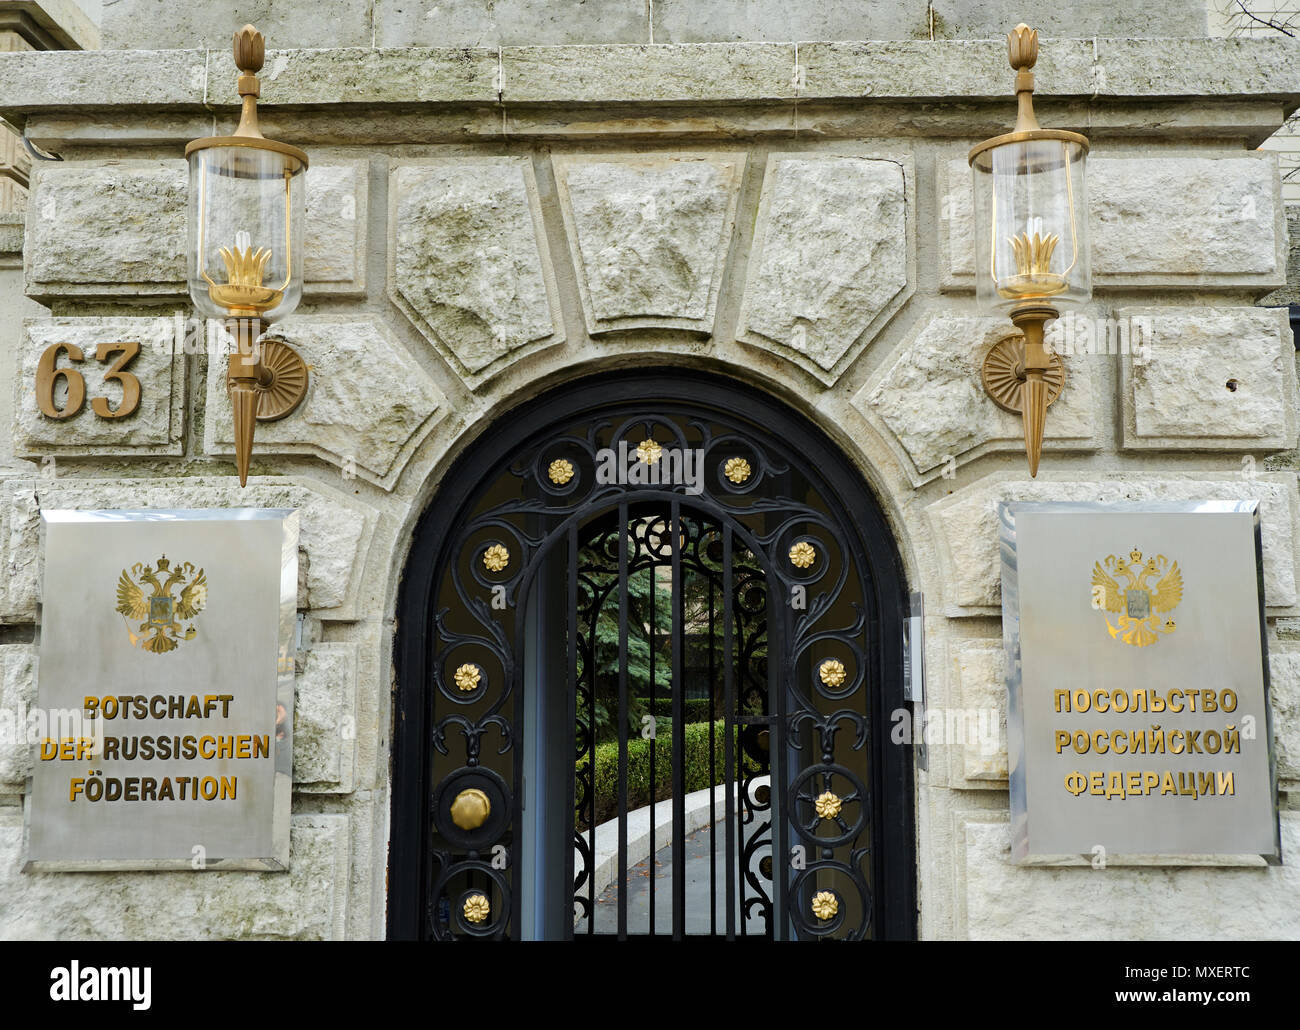 Berlin, Germany - April 14, 2018: Outer gate of Russian Federation Embassy with lamps; nameplates and house number - Stock Image